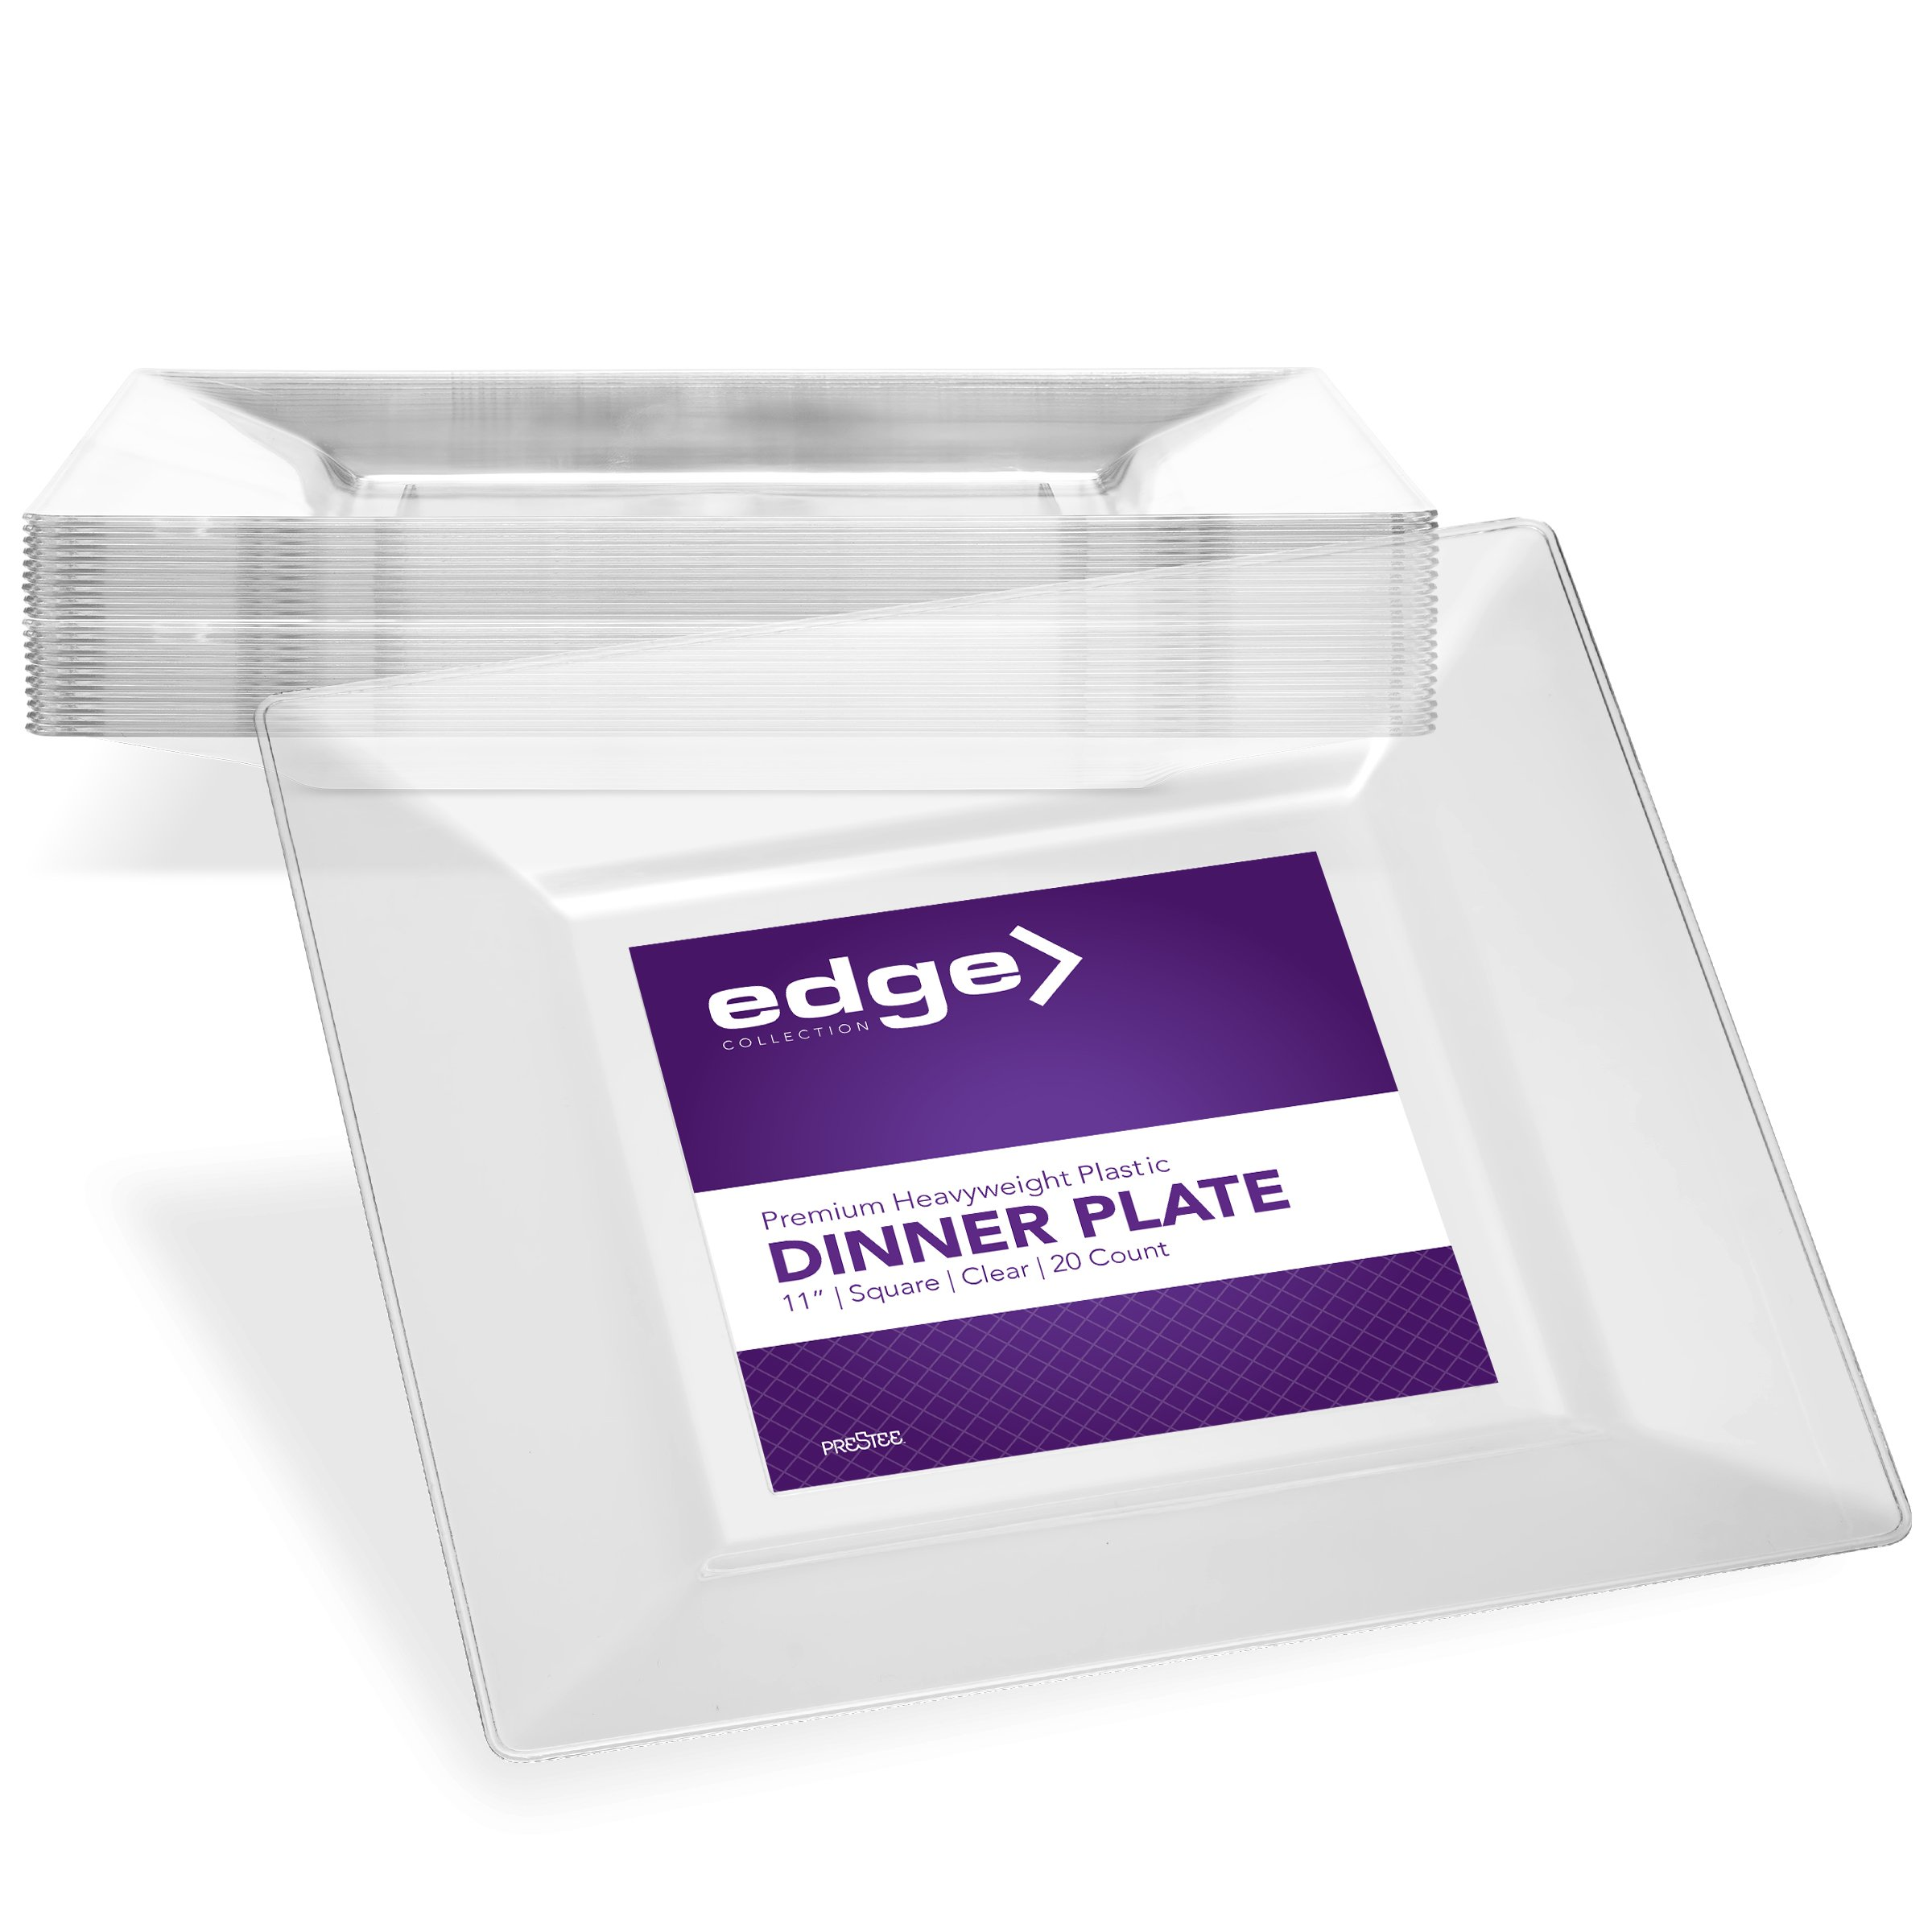 EDGE CLEAR PLASTIC PARTY DISPOSABLE PLATES | 11 Inch Hard Square Large Wedding Dinner Plates, 20 Ct | Elegant & Fancy Heavy Duty Hard Party Supplies Plates for Holidays & Occasions